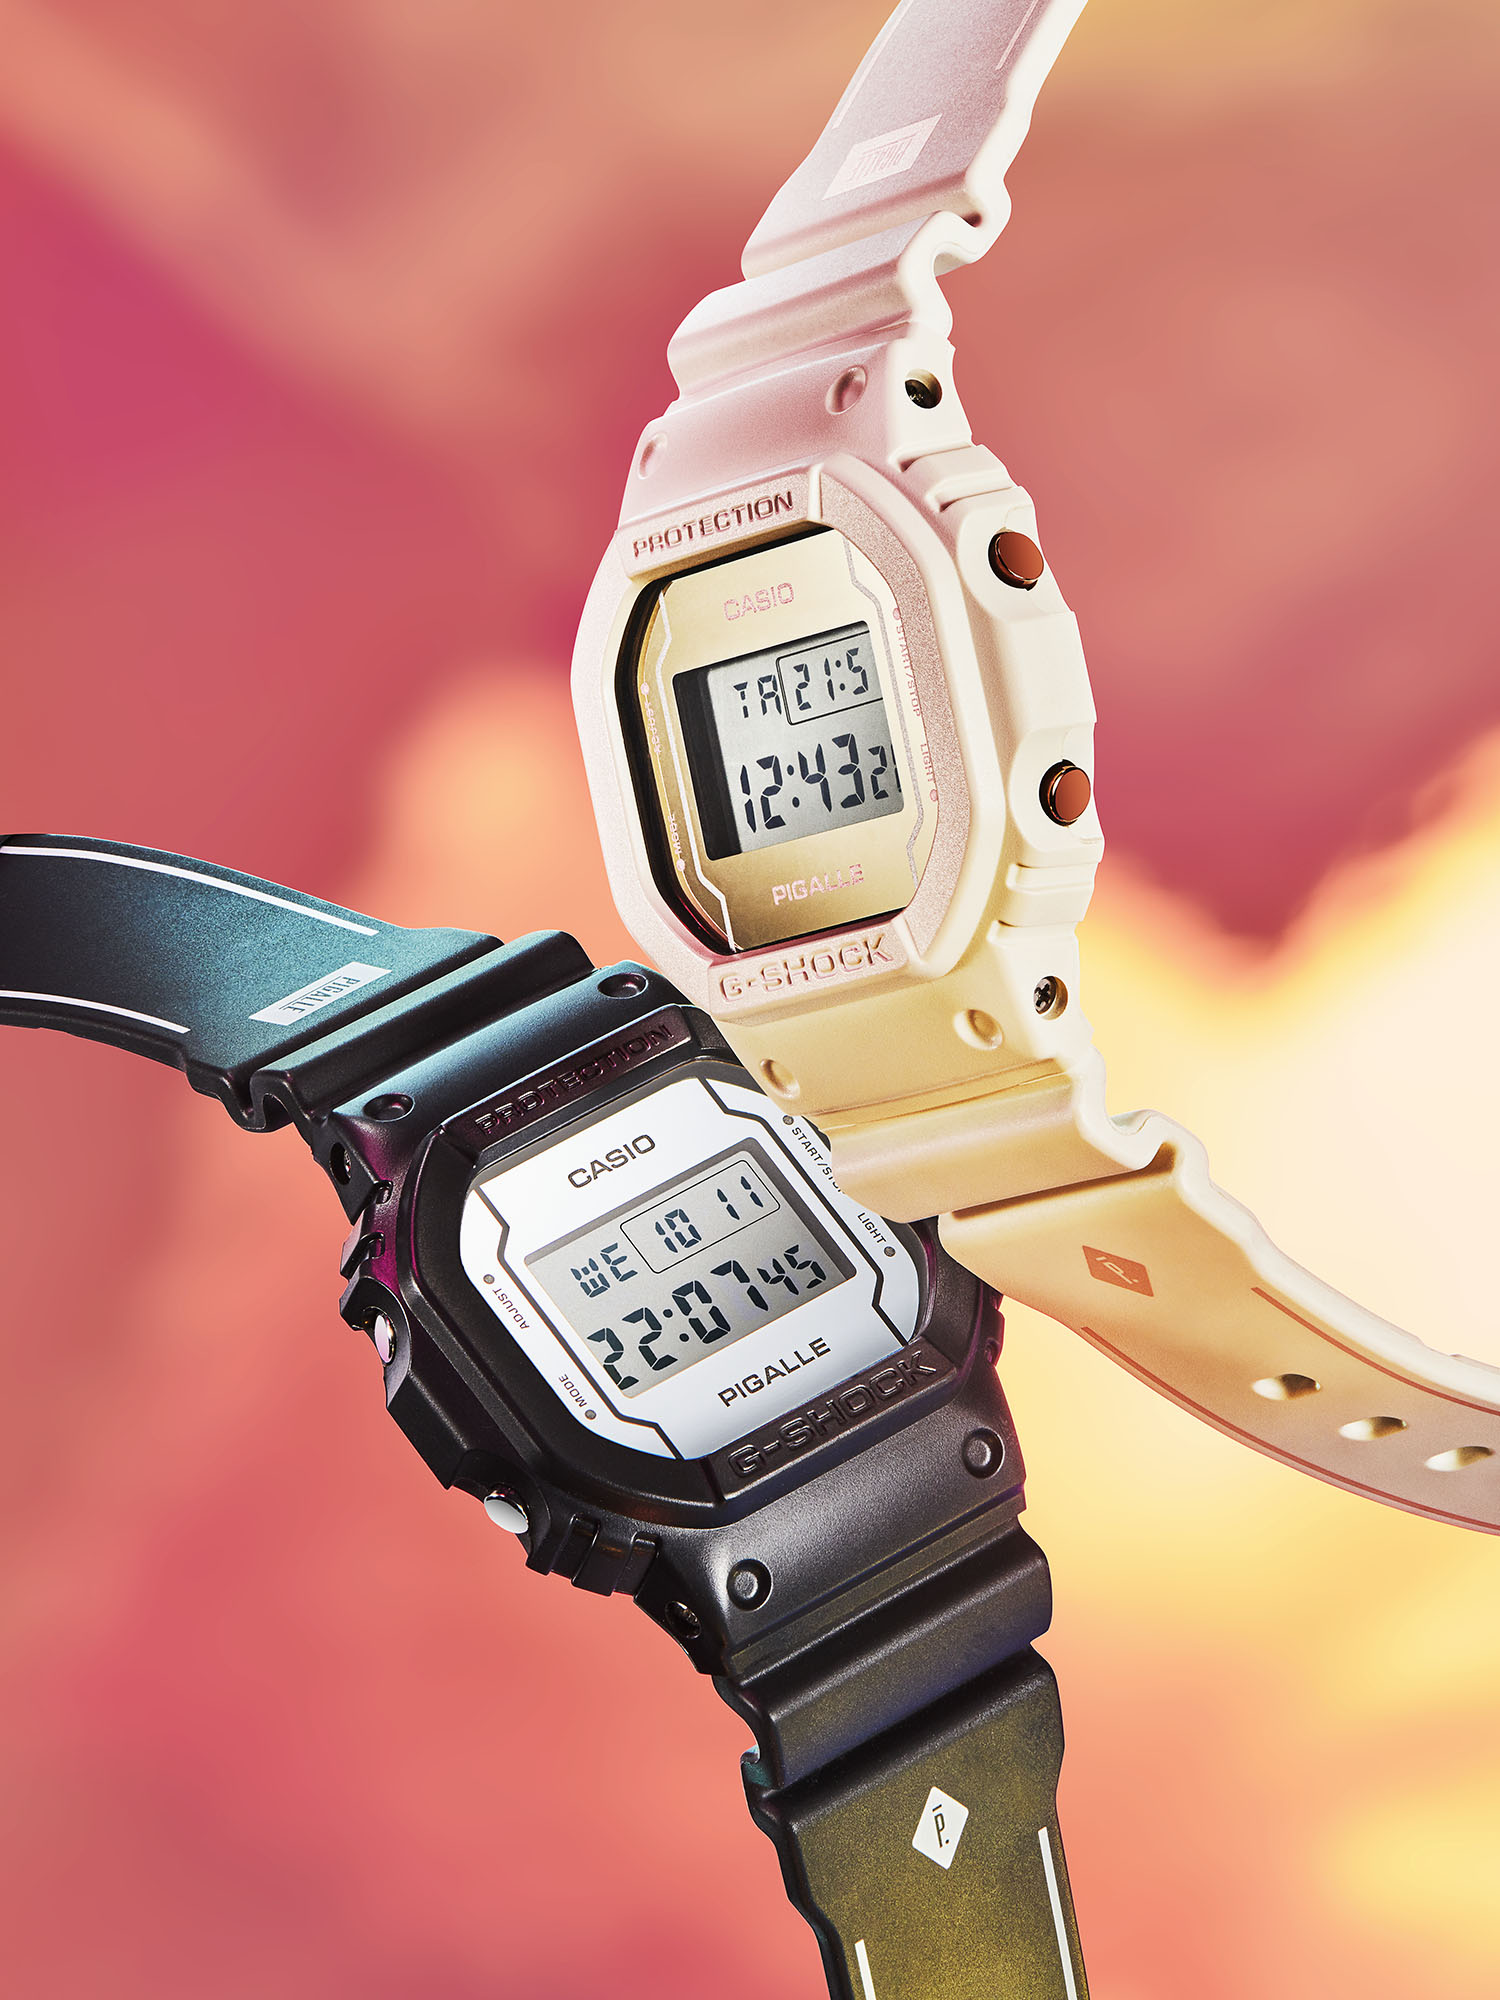 G-SHOCK X PIGALLE